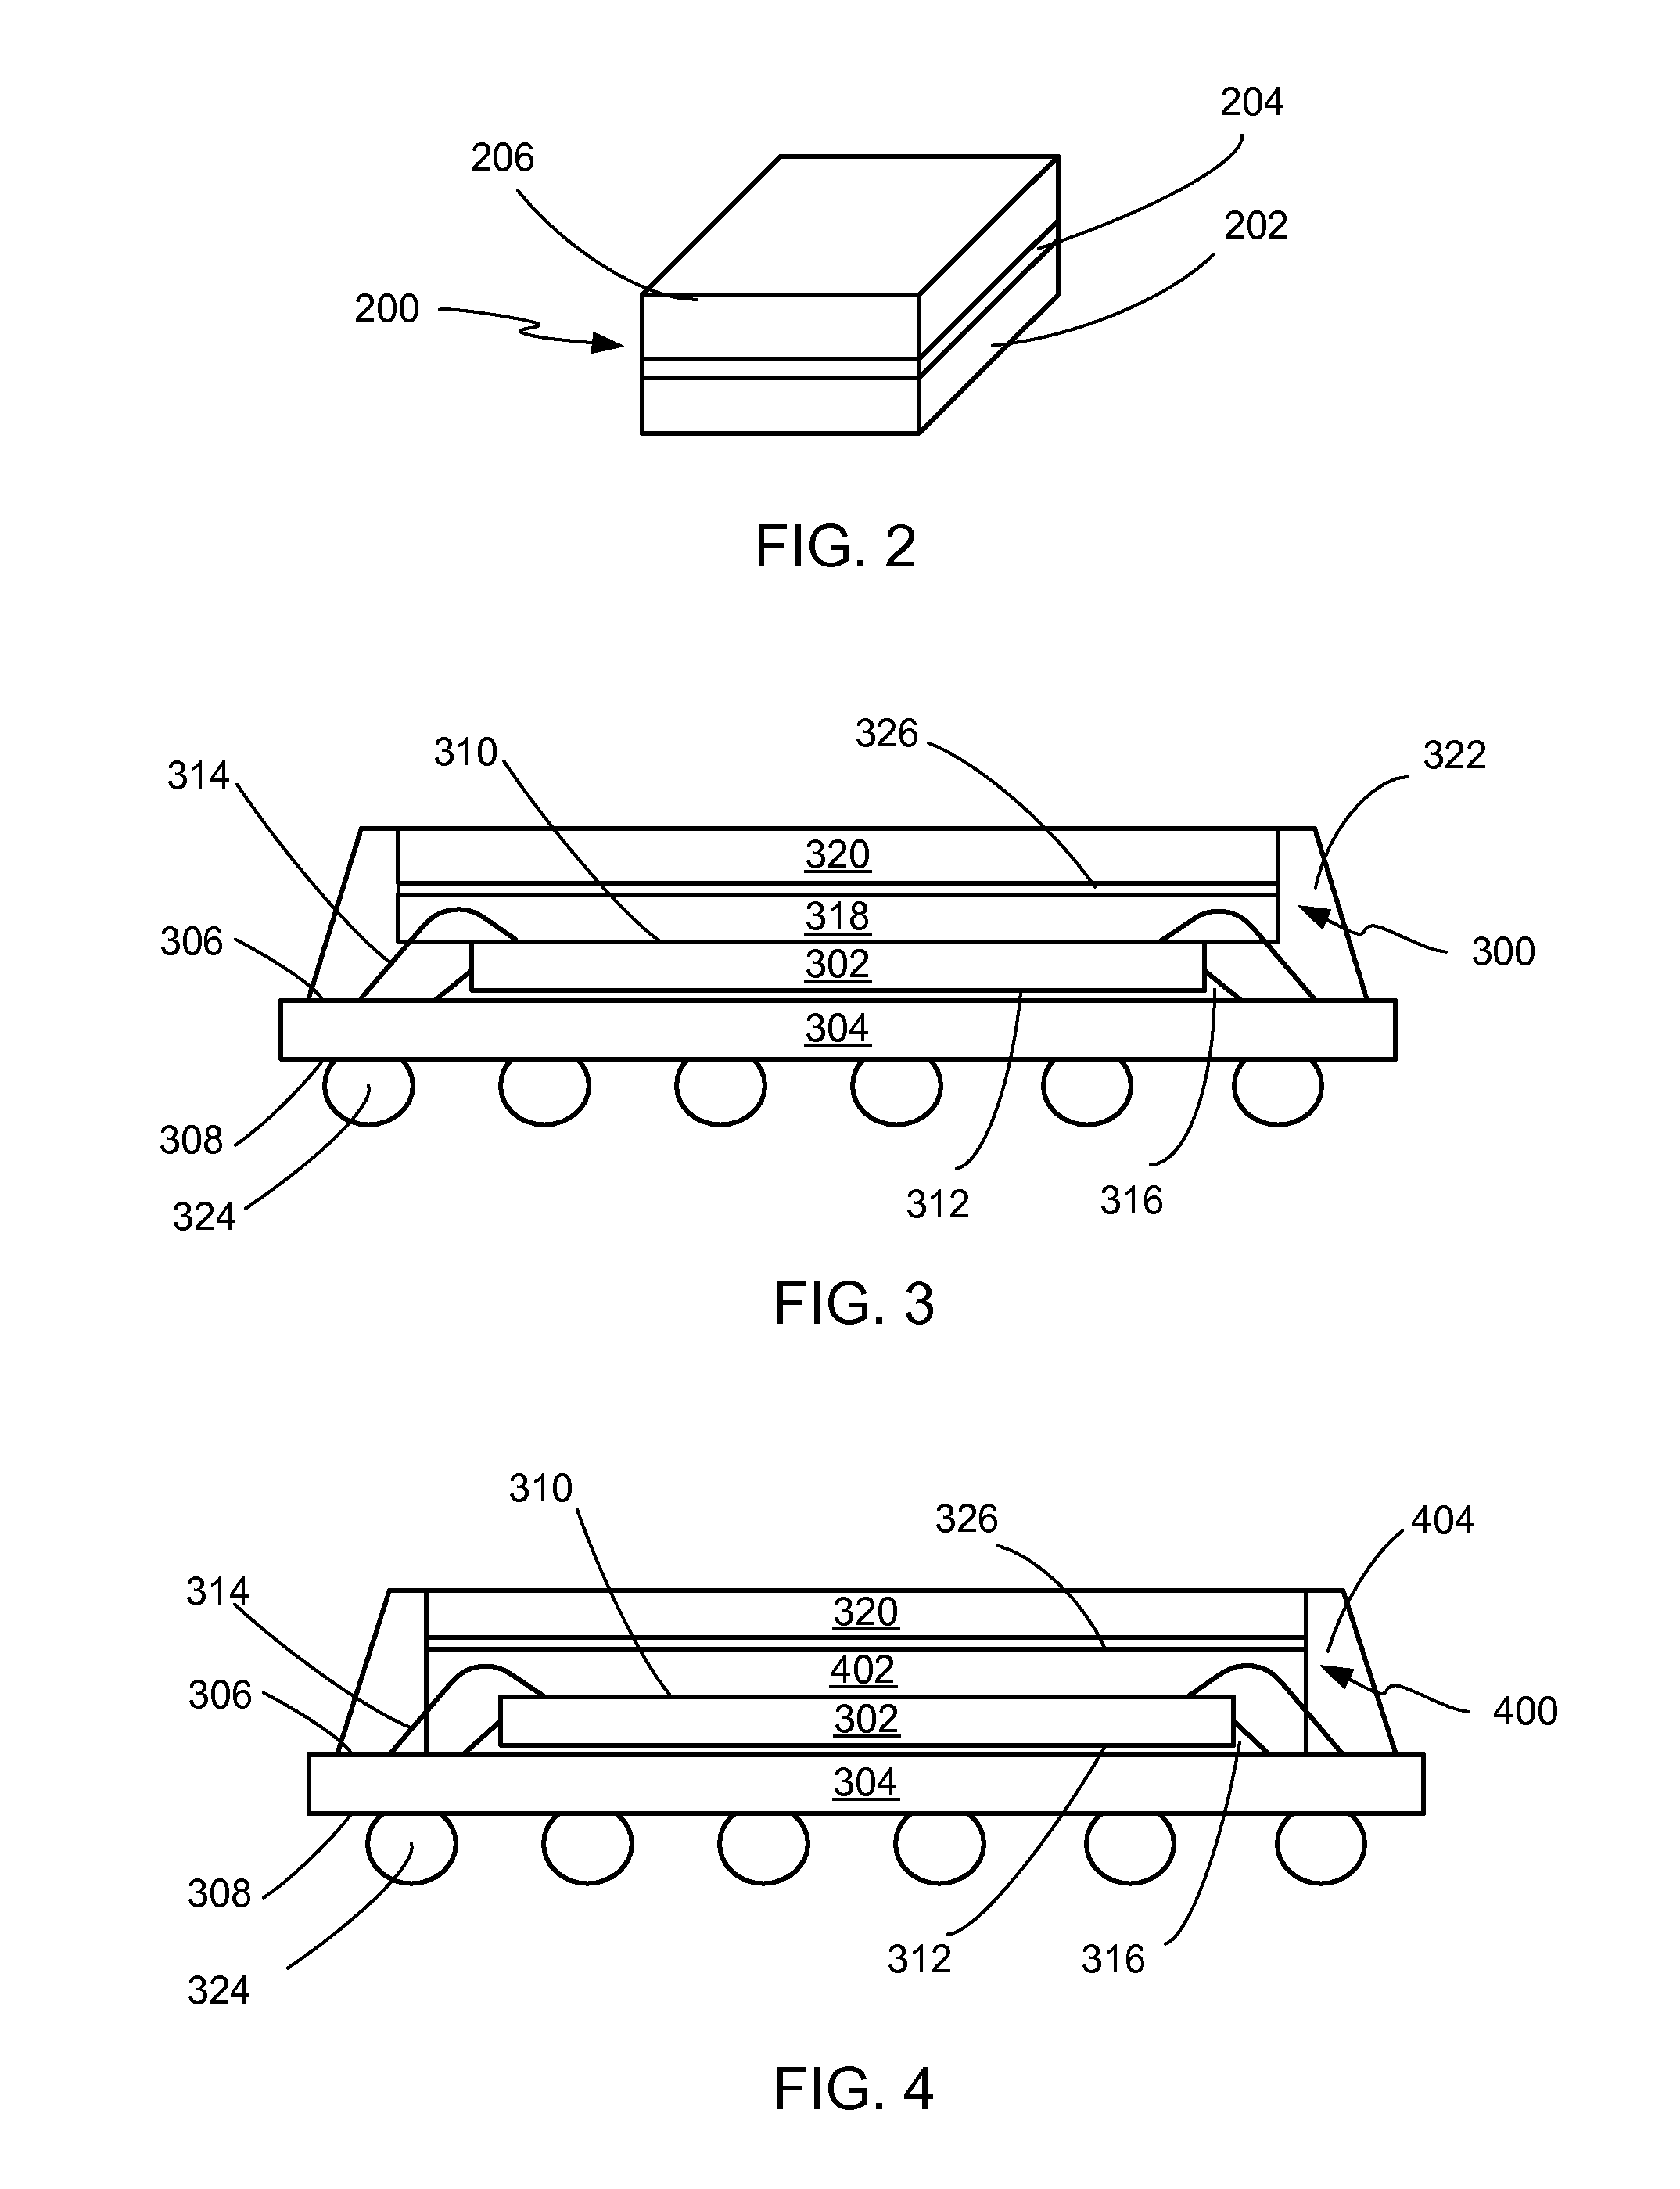 smallscale integrated circuit die with bond wires attached in the